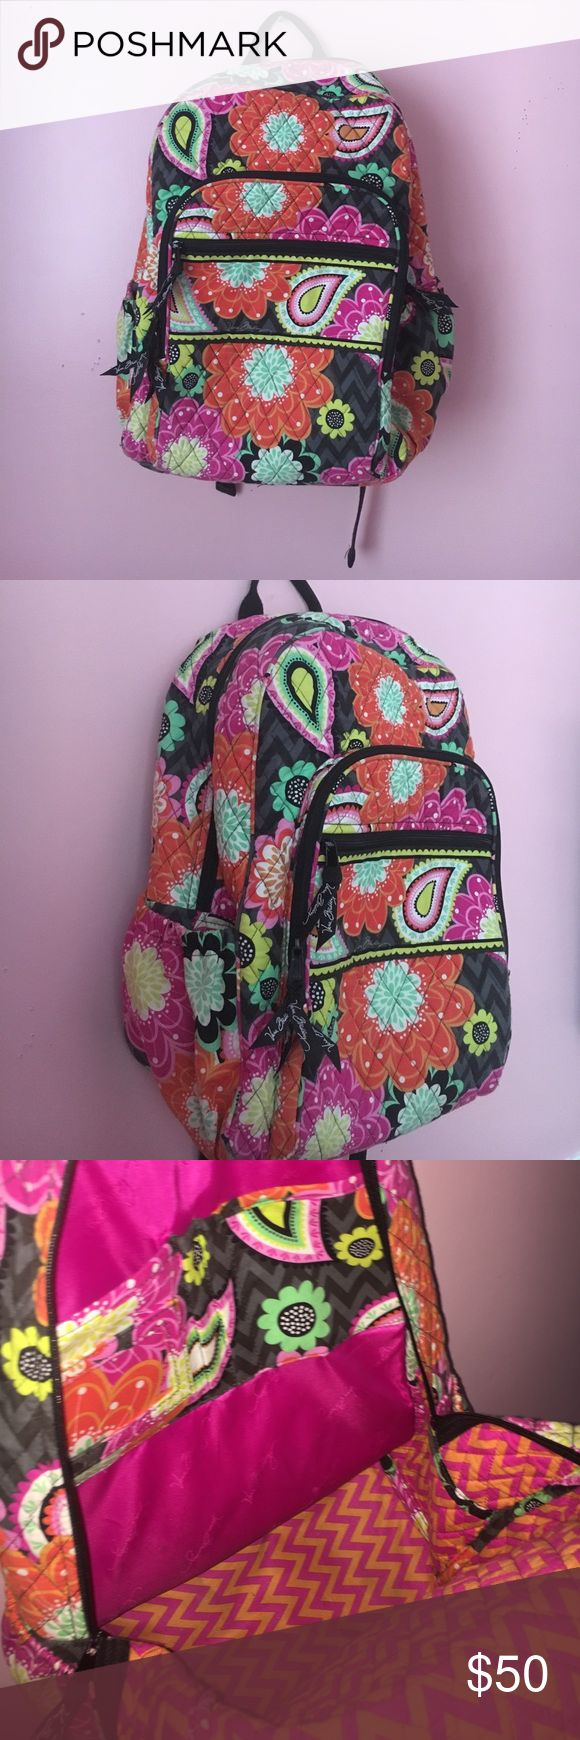 Vera Bradly backpack SALE Soft, floral backpack that is sold out at Vera Bradly. It has lots of room to put a bunch of stuff and to fit a lot of stuff inside. Has no stains/marks on it, was used, but is in GREAT condition. Vera Bradley Bags Backpacks